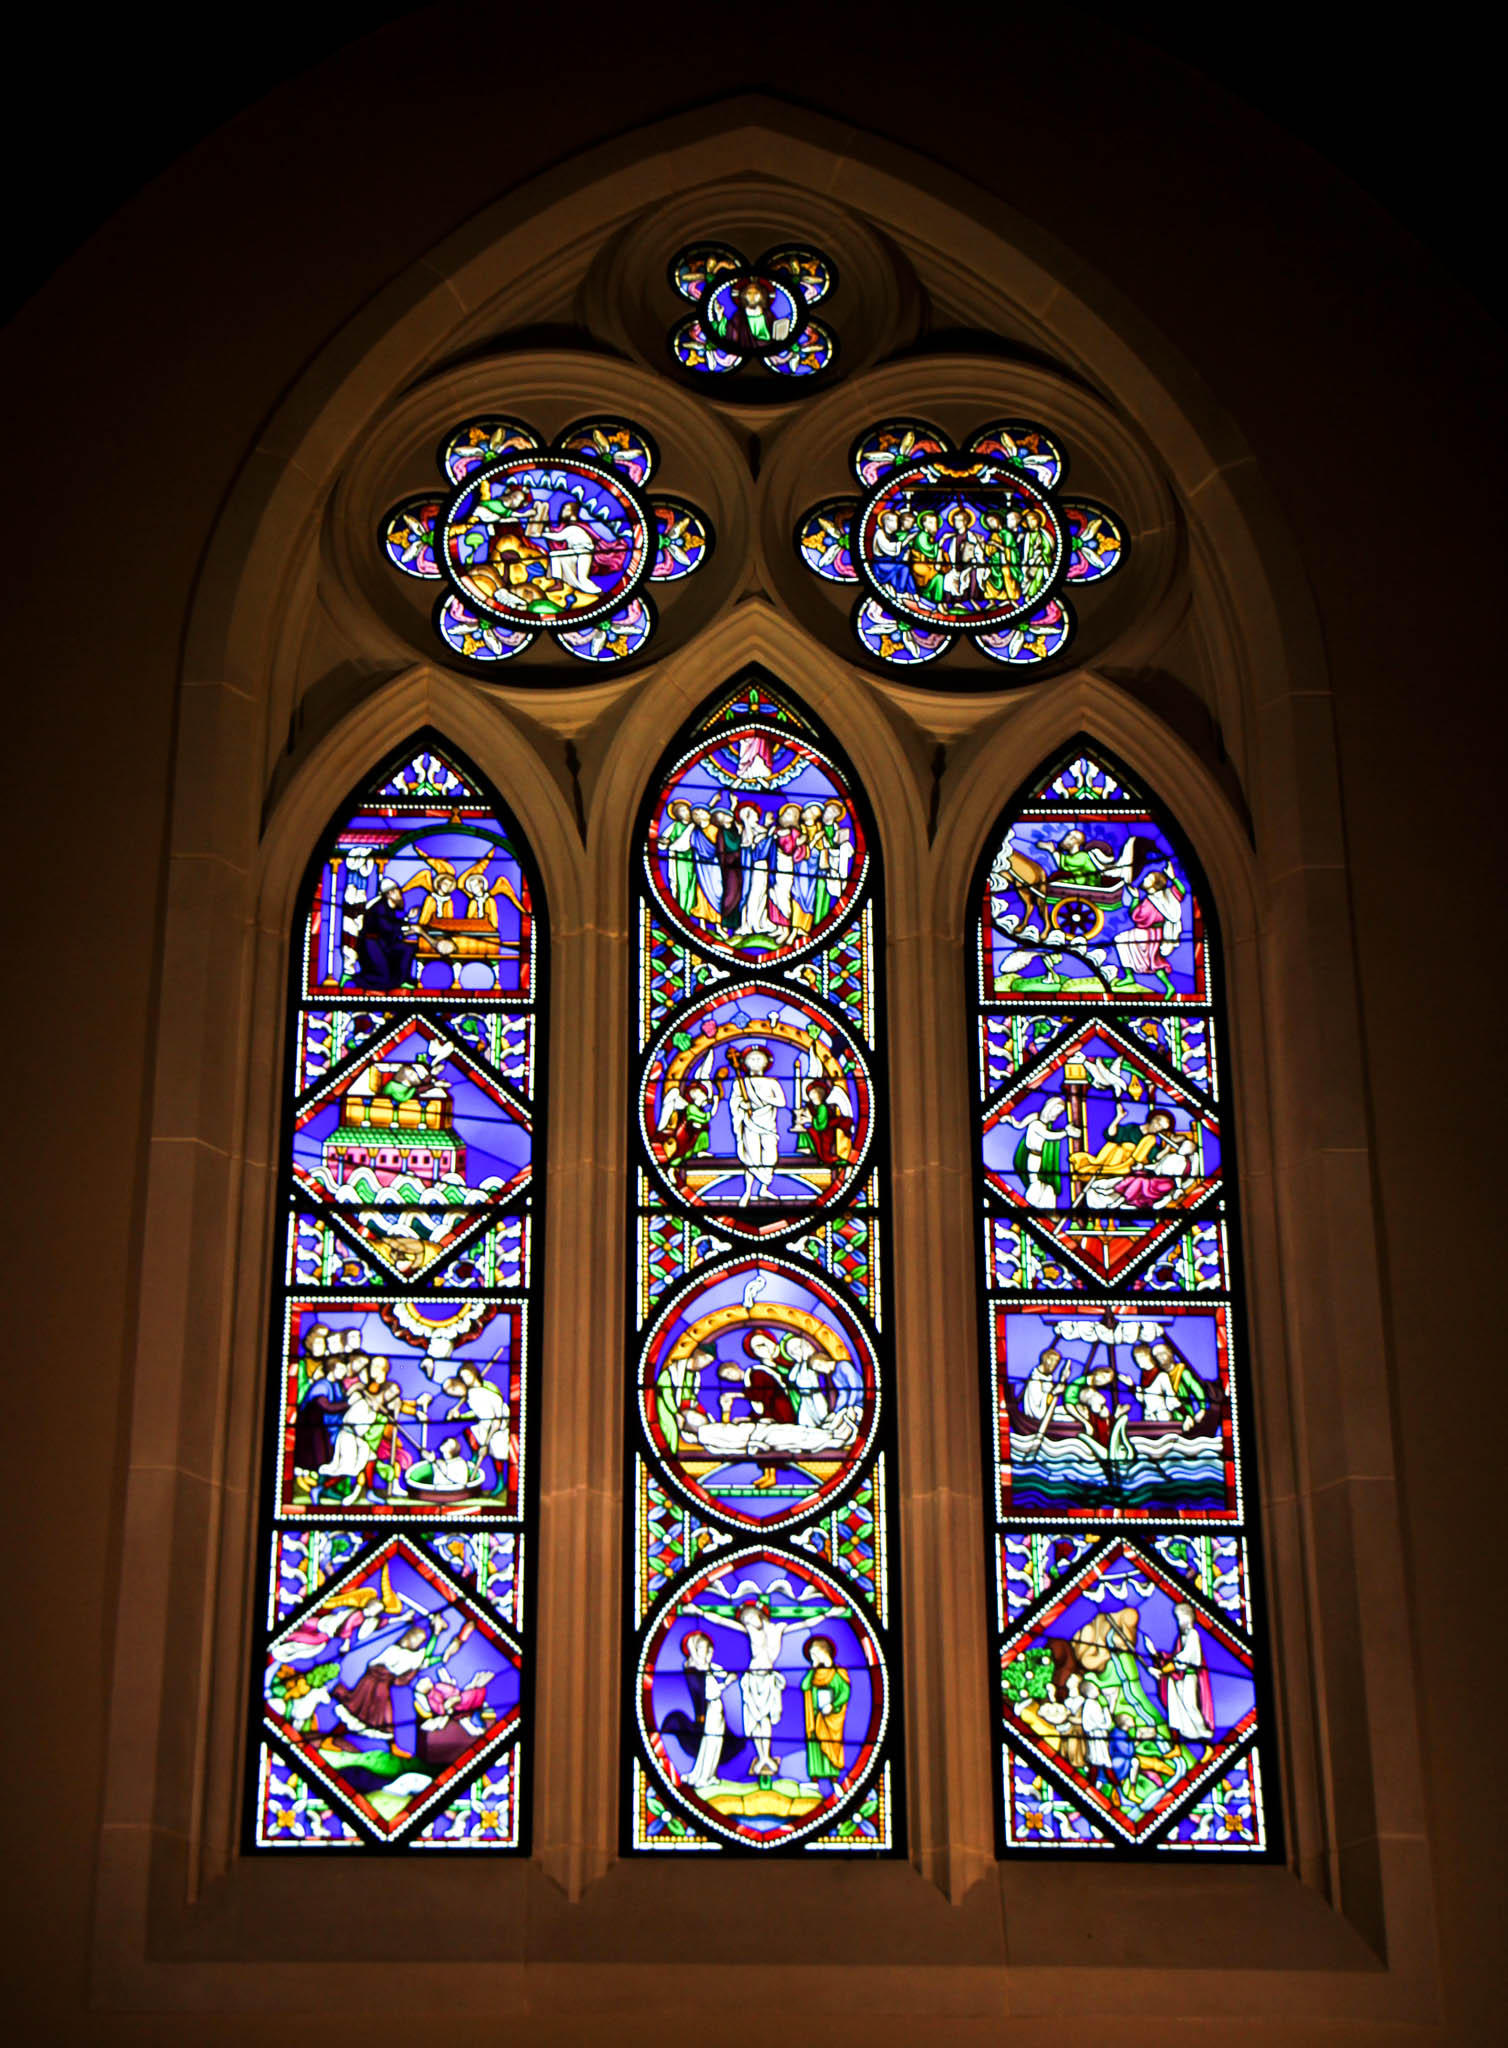 church stained glass windows Here Are 5 Fascinating Things About The New Stained Glass Window  church stained glass windows